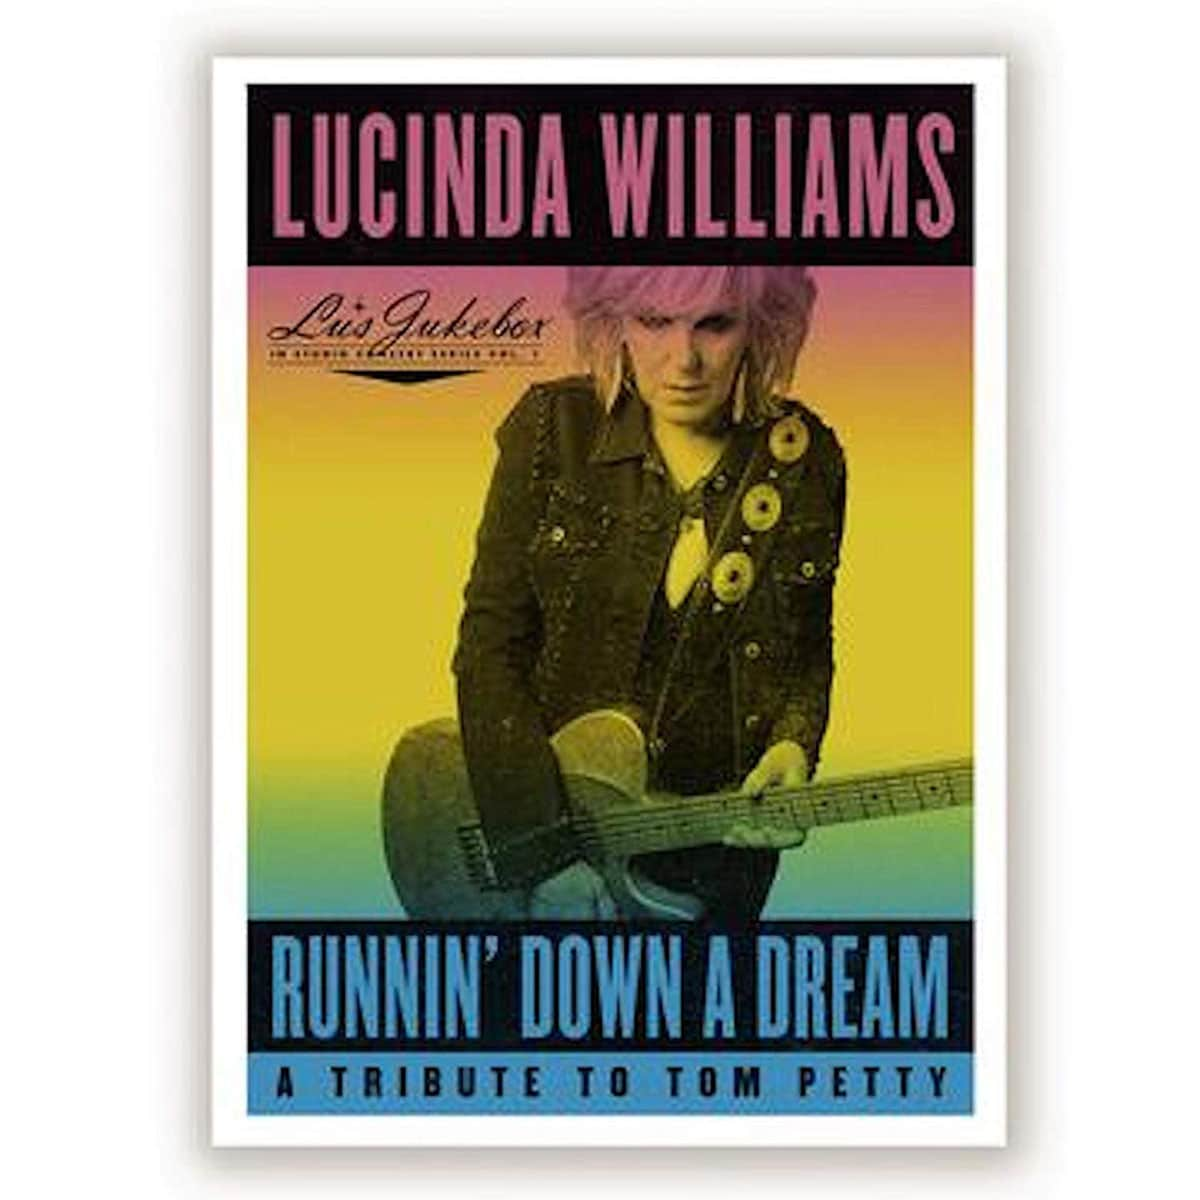 "Release: Lucinda Williams ""Lu's Jukebox Vol. 1: Runnin' Down A Dream - A Tribute To Tom Petty"" (CD/LP, Highway 20 Records, 16 April 2021)"